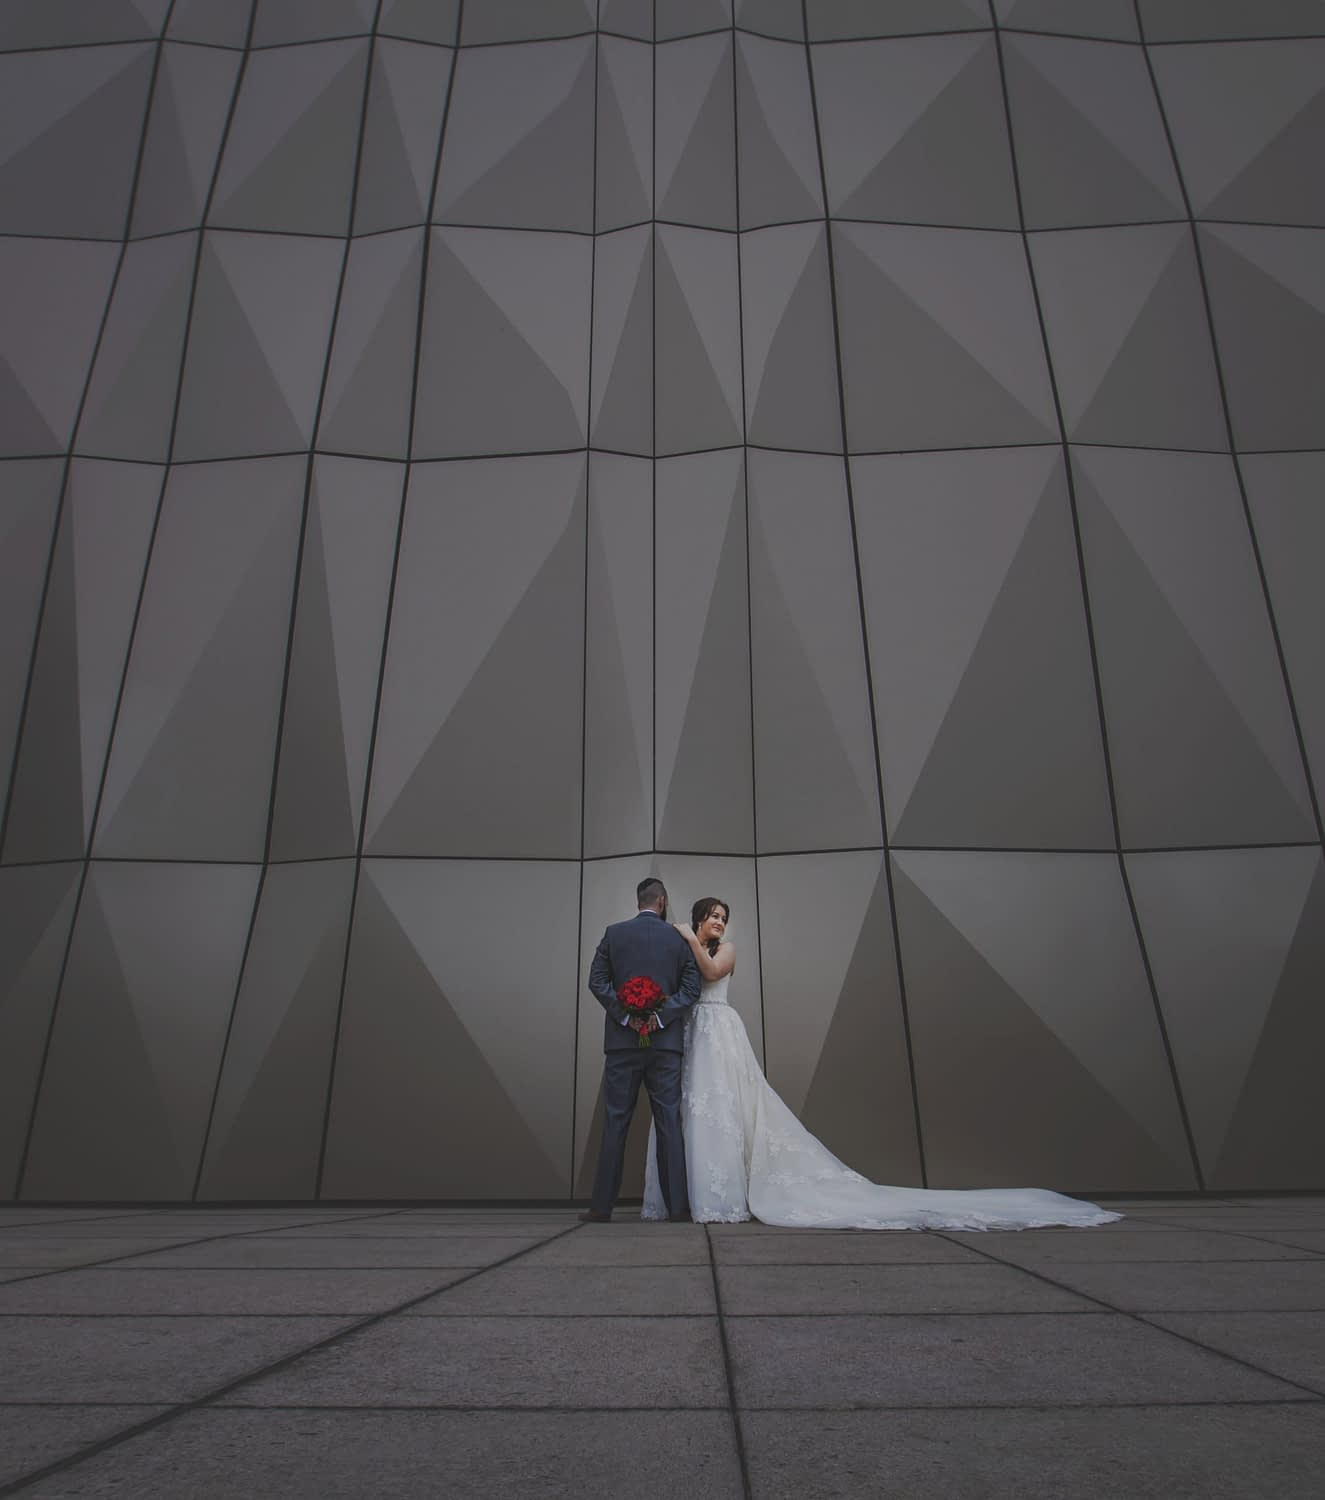 couple standing in front of geometric patterned building